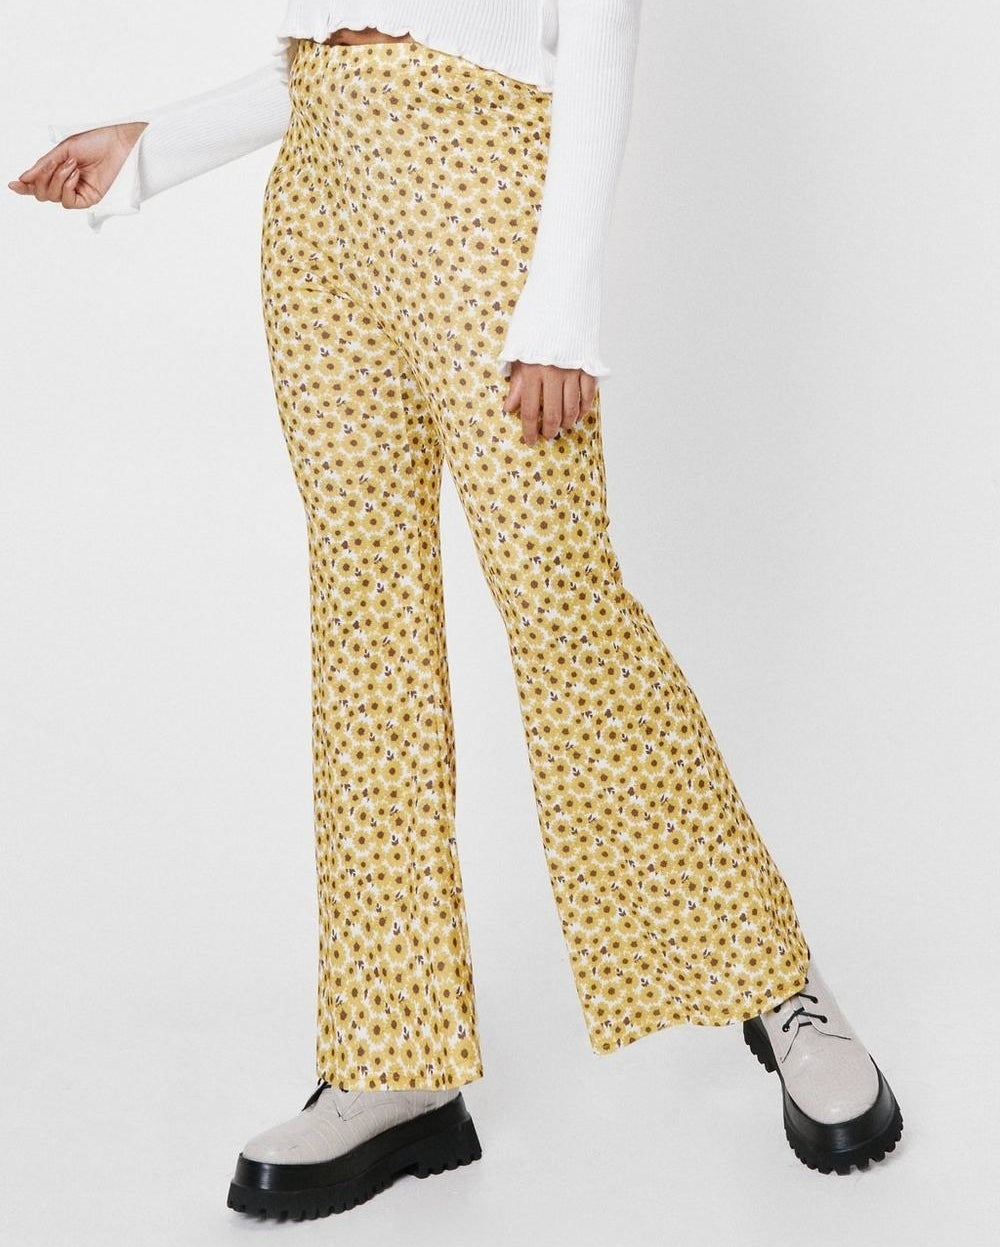 a pair of pants that flare toward the bottom with daisies patterned all over